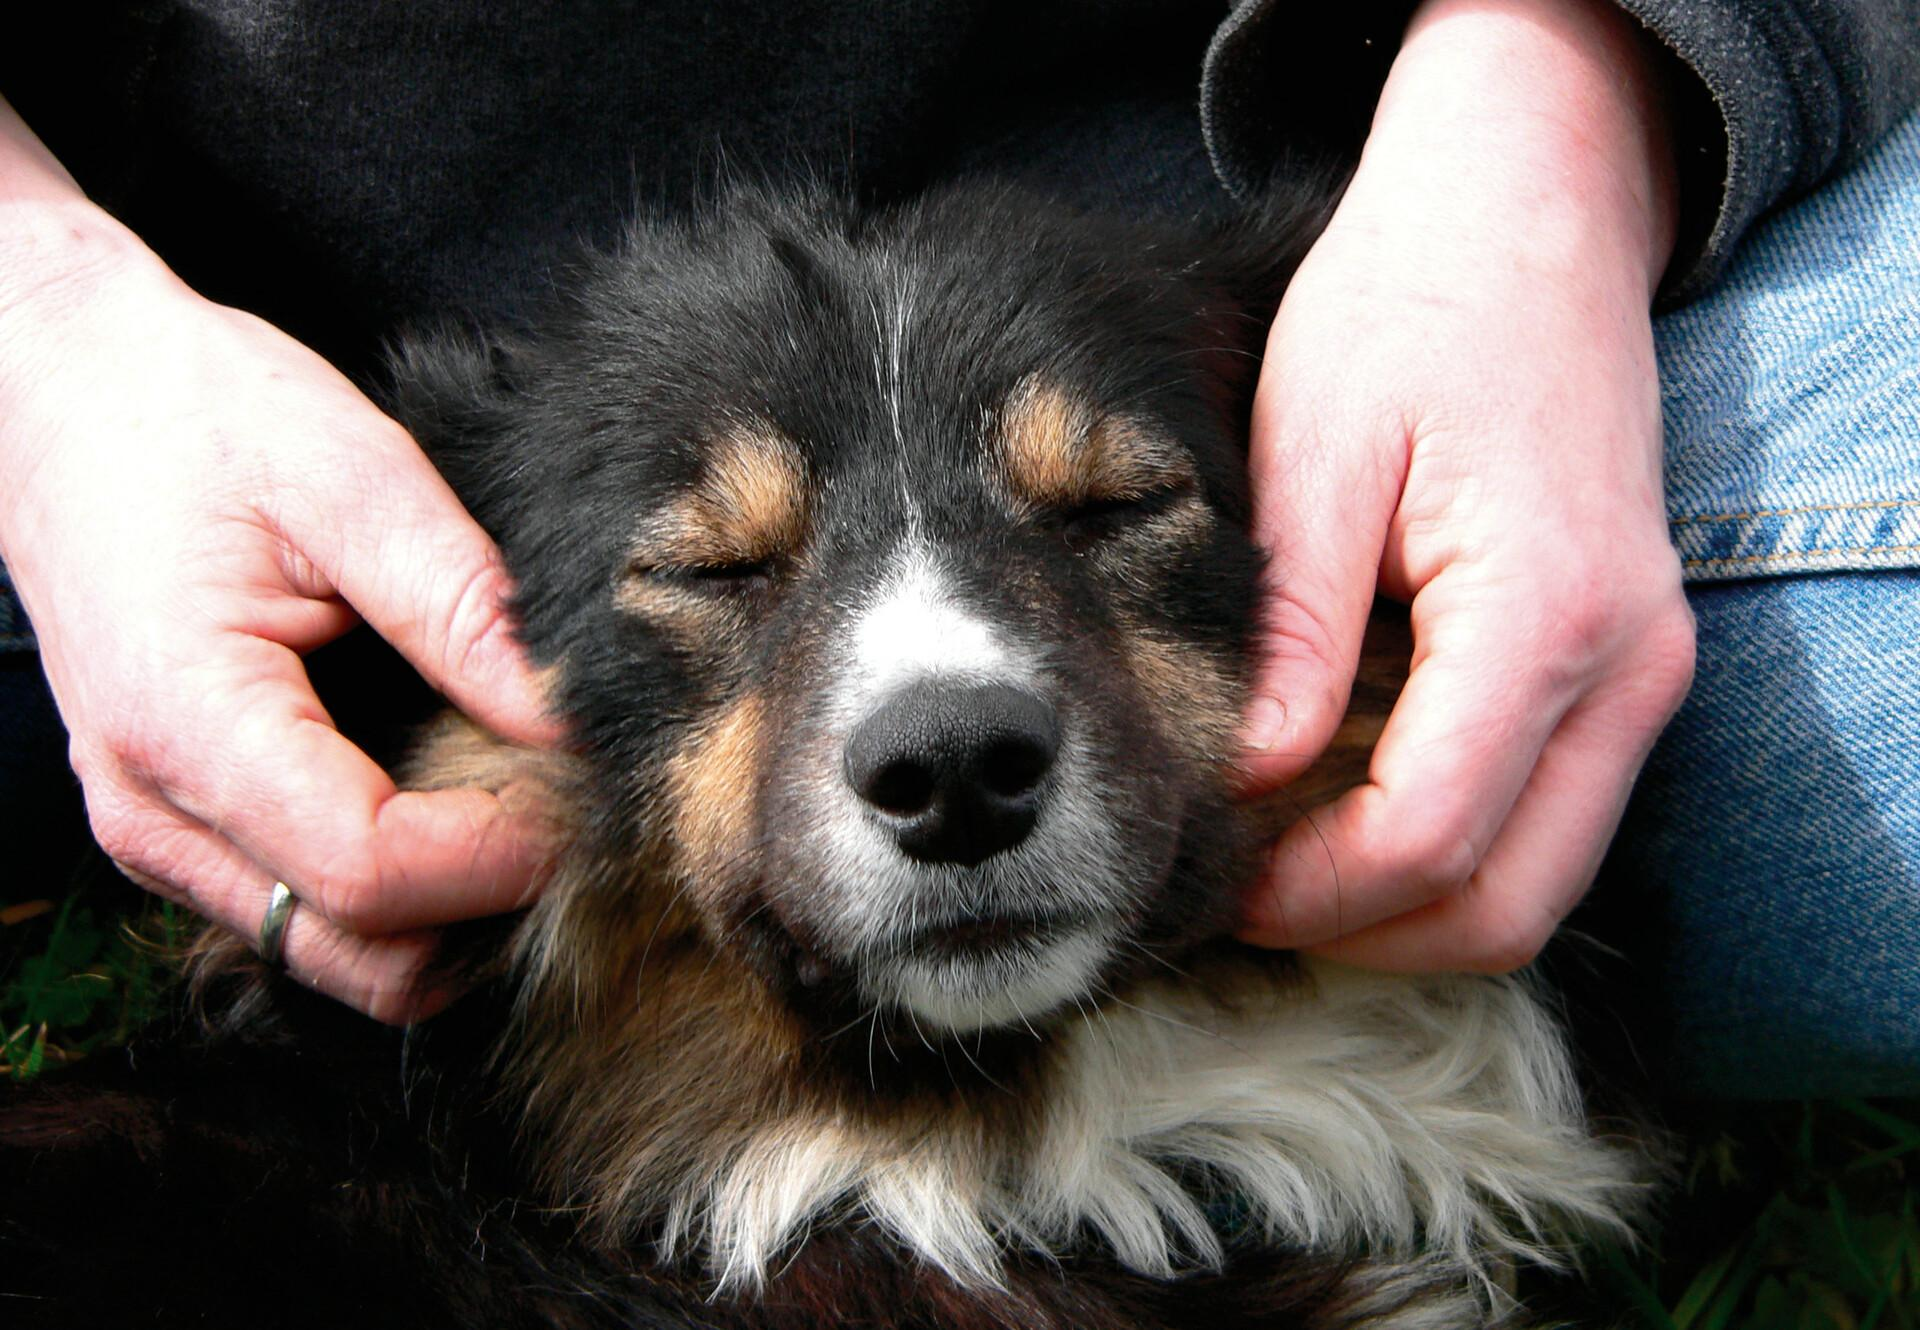 Dog being petted